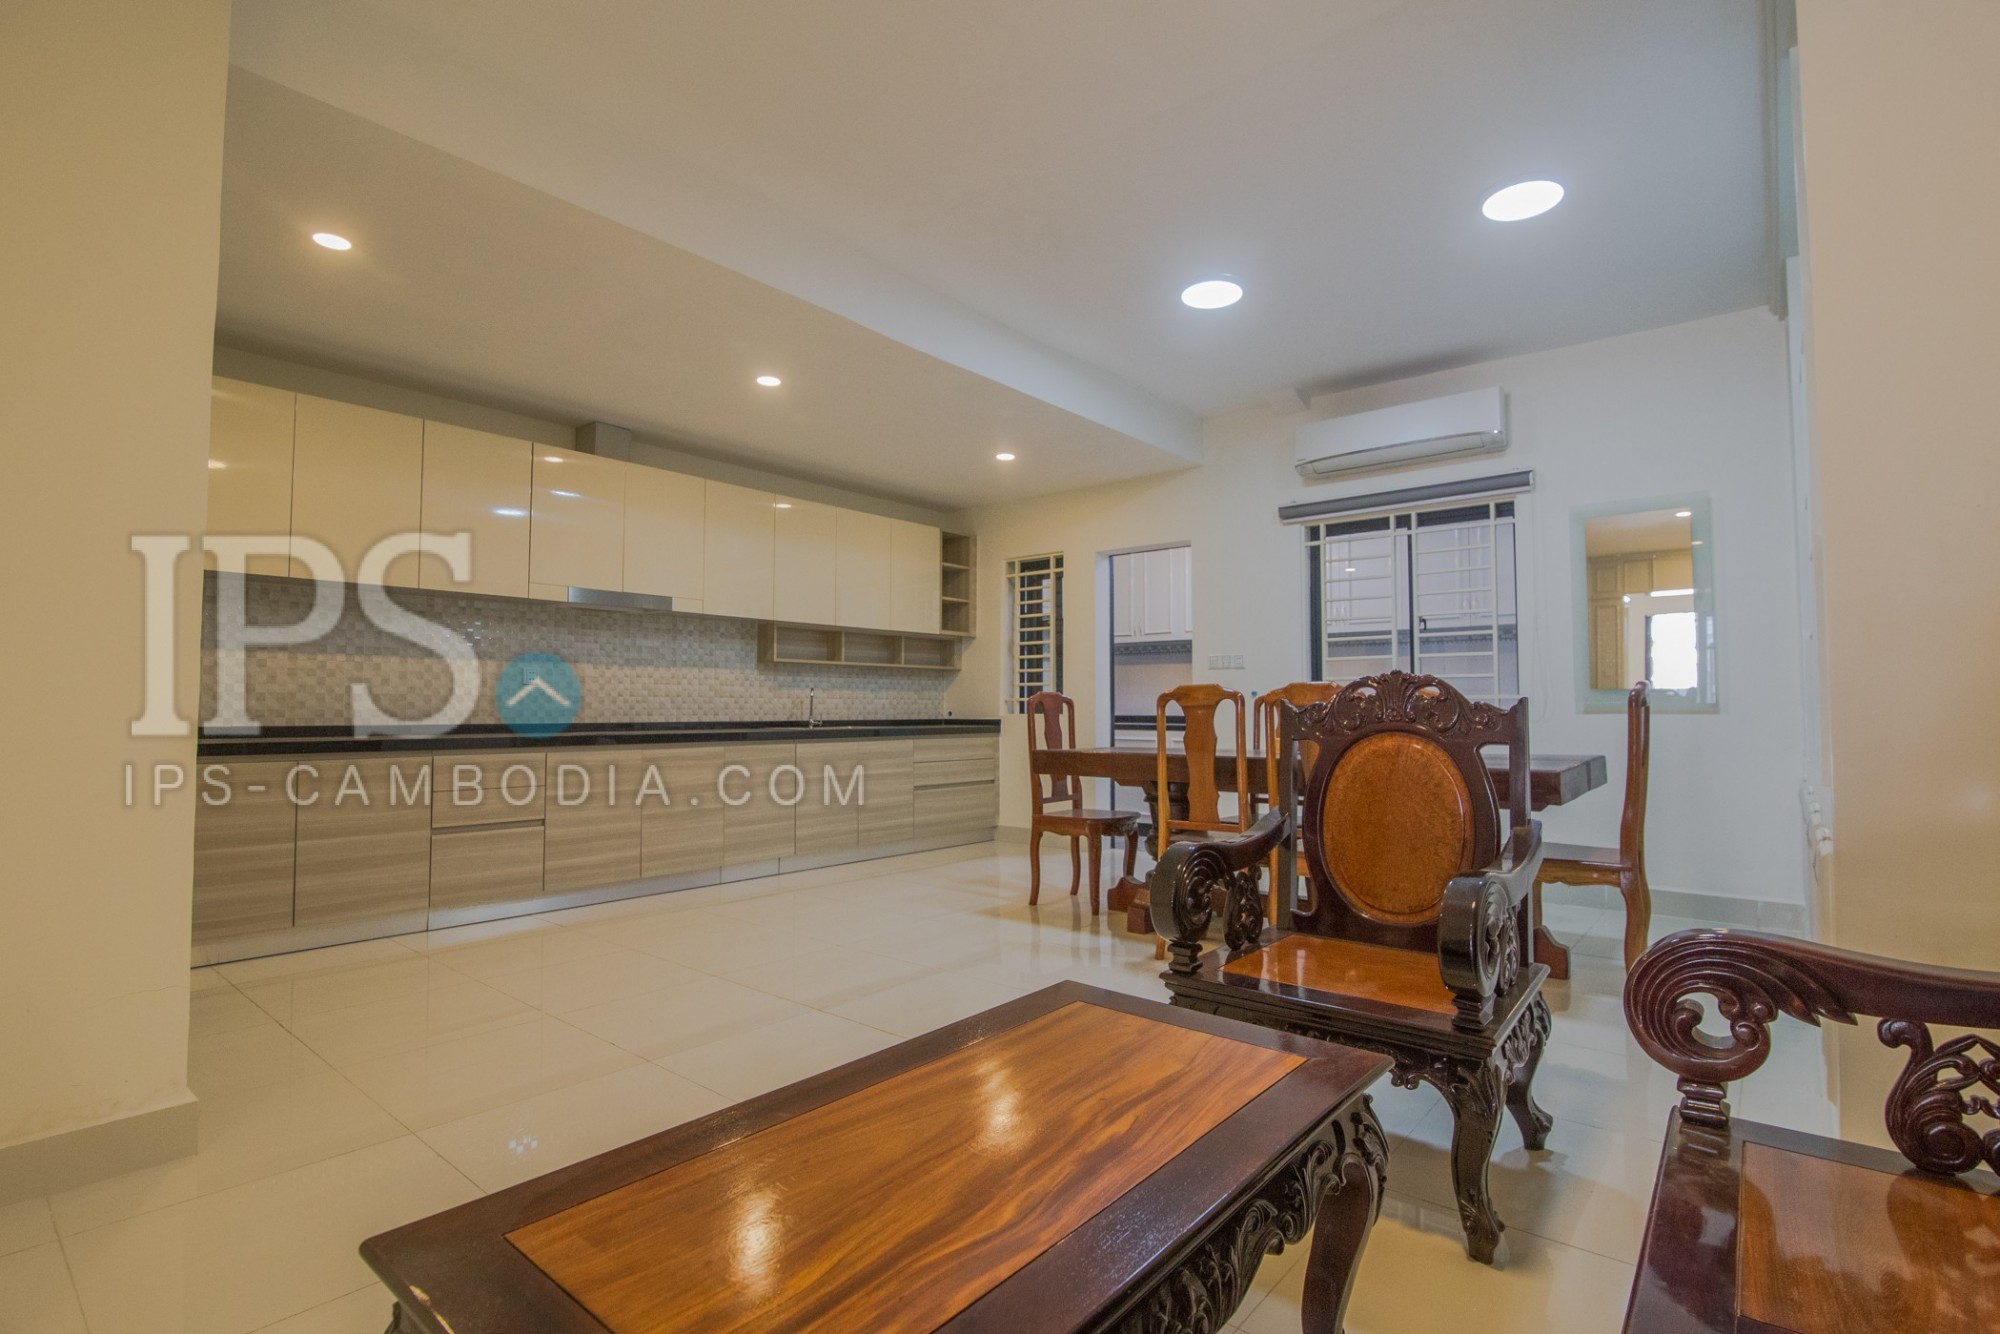 5 Bedroom Townhouse For Rent - Chak Angrae Kraom, Khan Meanchey, Phnom Penh